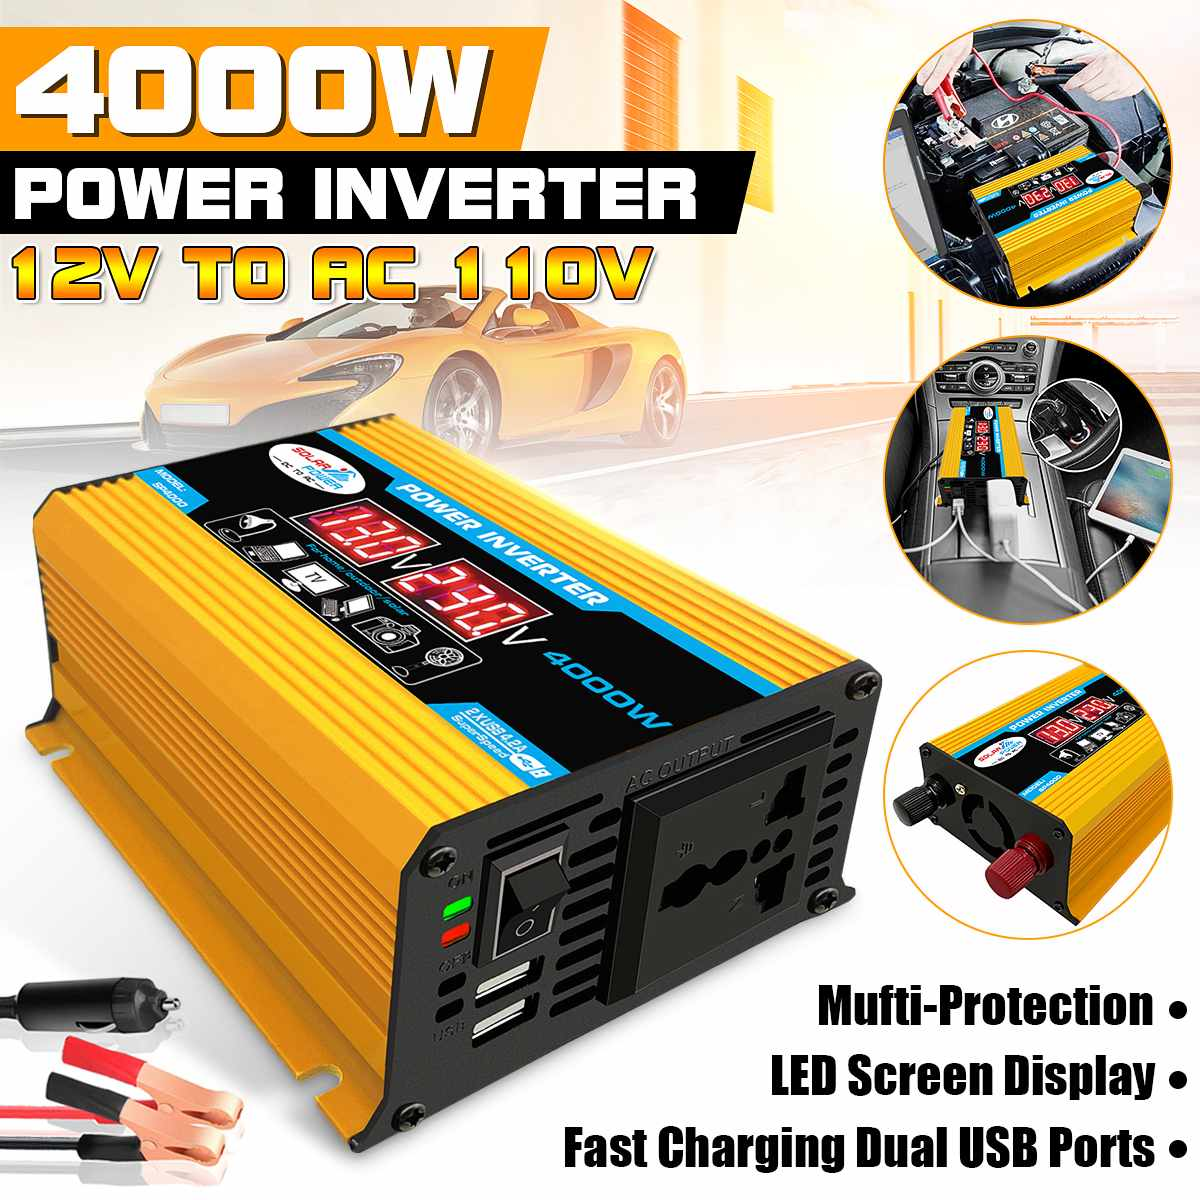 4000W 12V To 220V/110V Dual USB Car Power Inverter Converter Charger Adapter  Voltage Transformer Modified Sine Wave LED Display